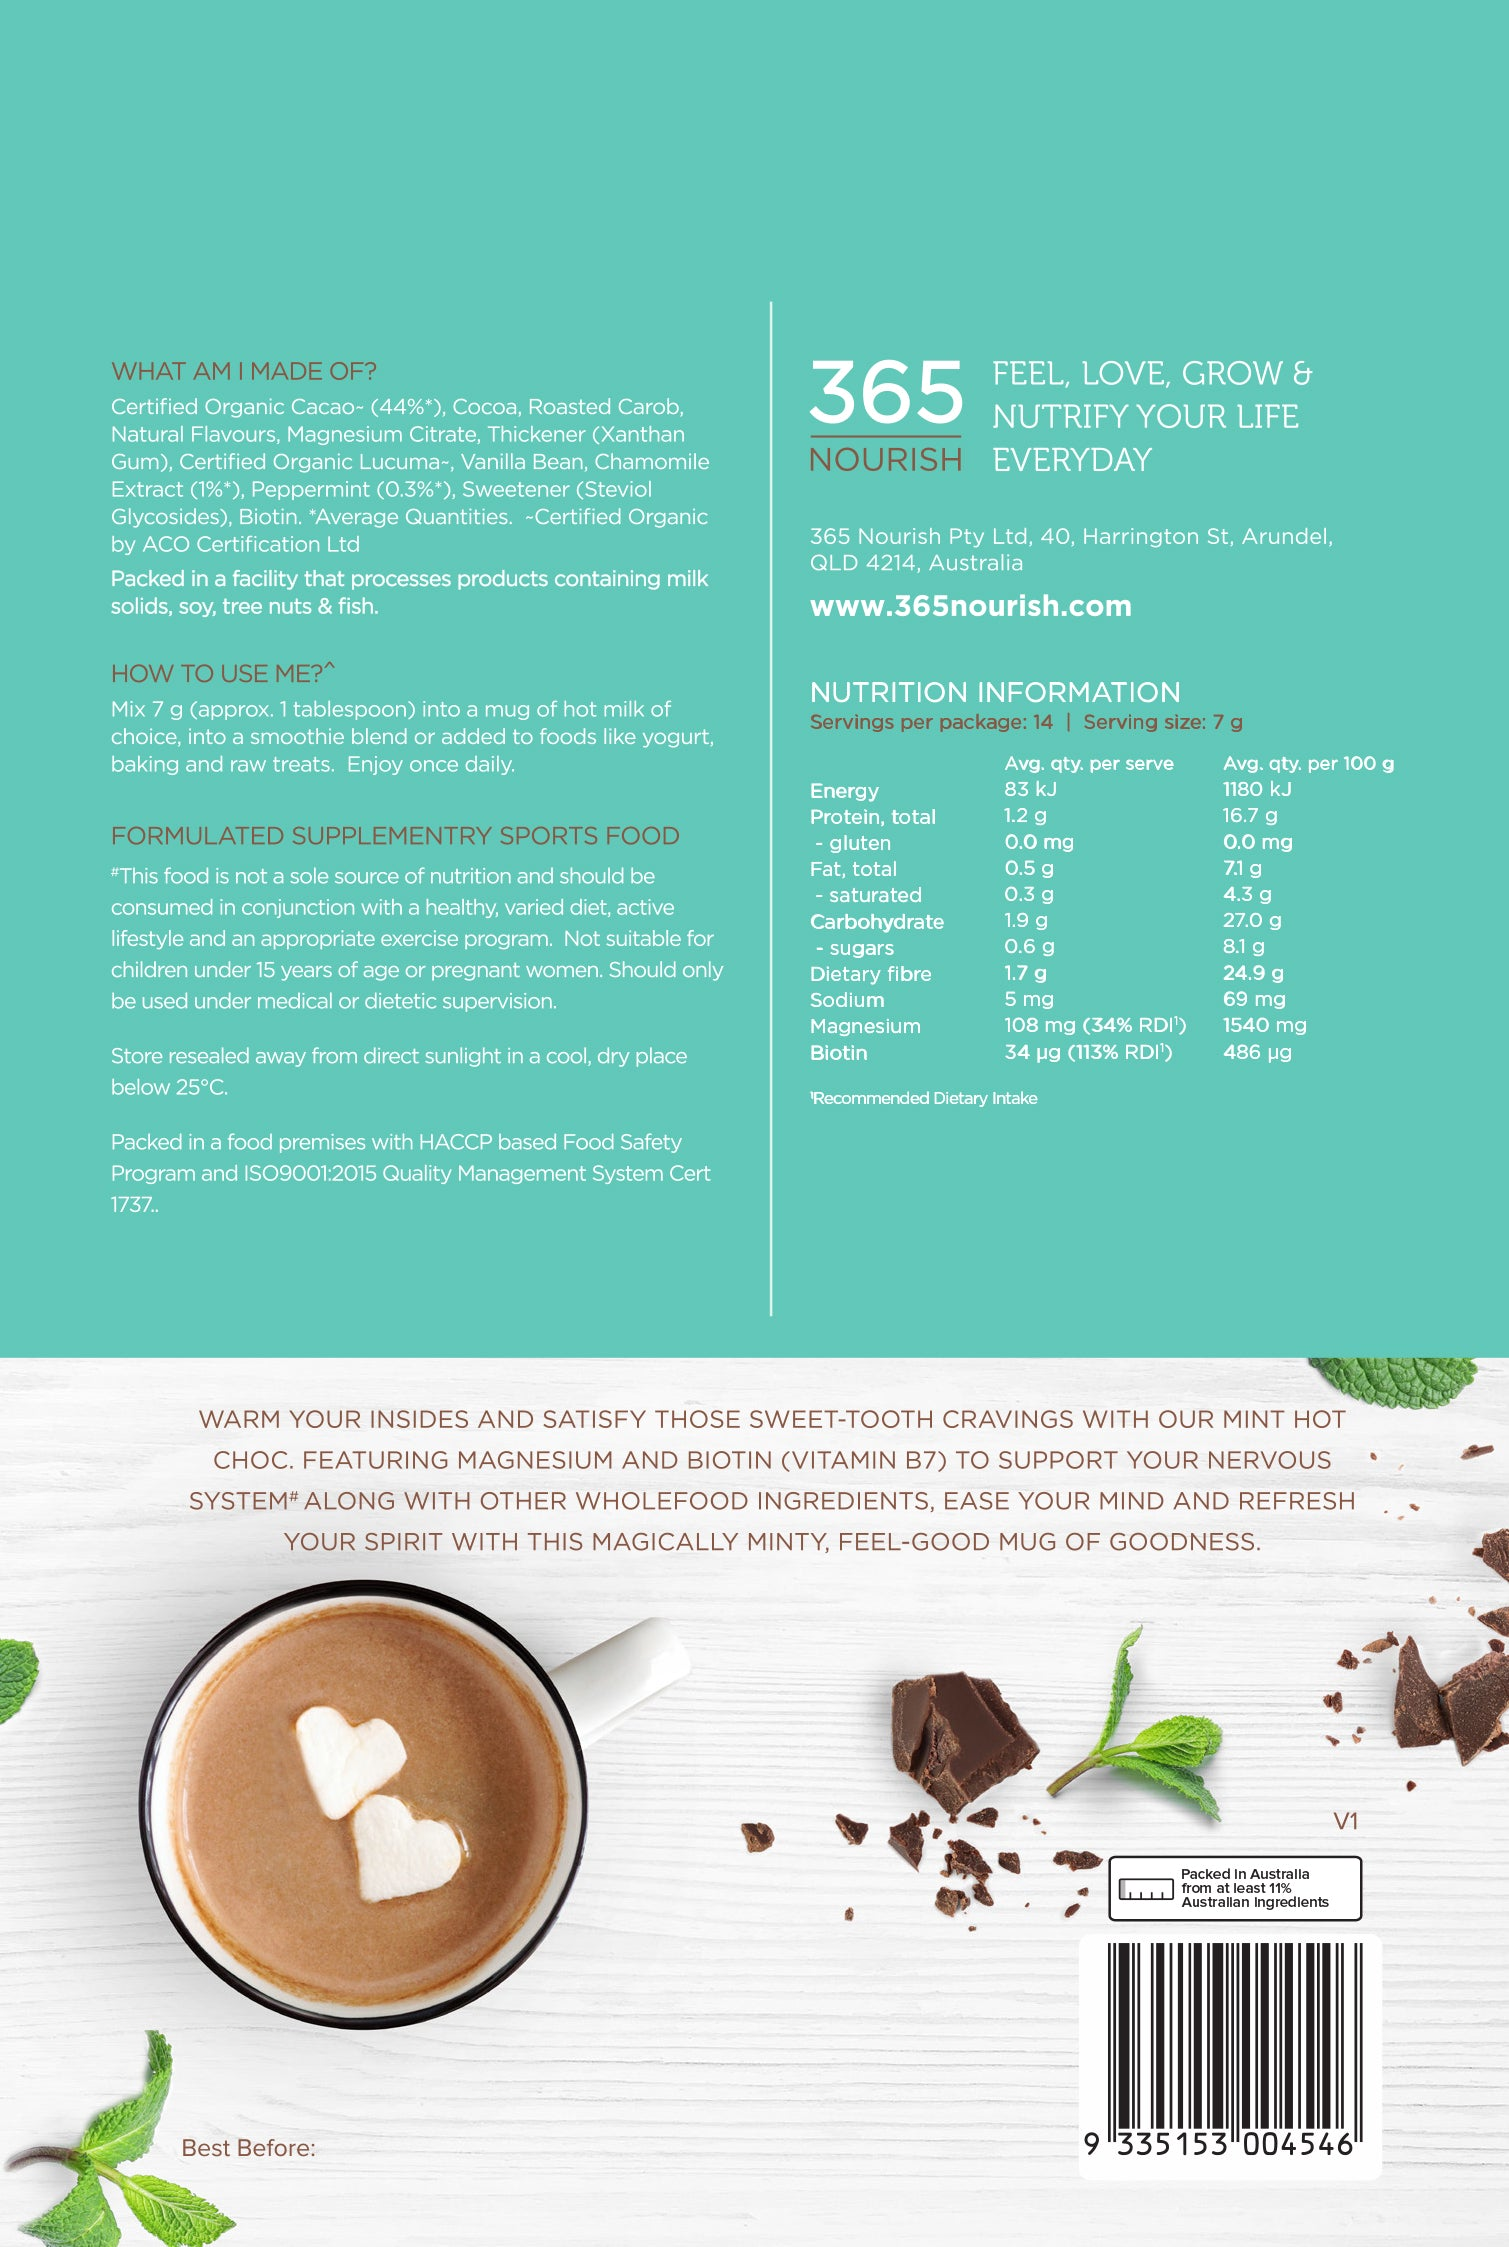 Mint Hot Chocolate 100g